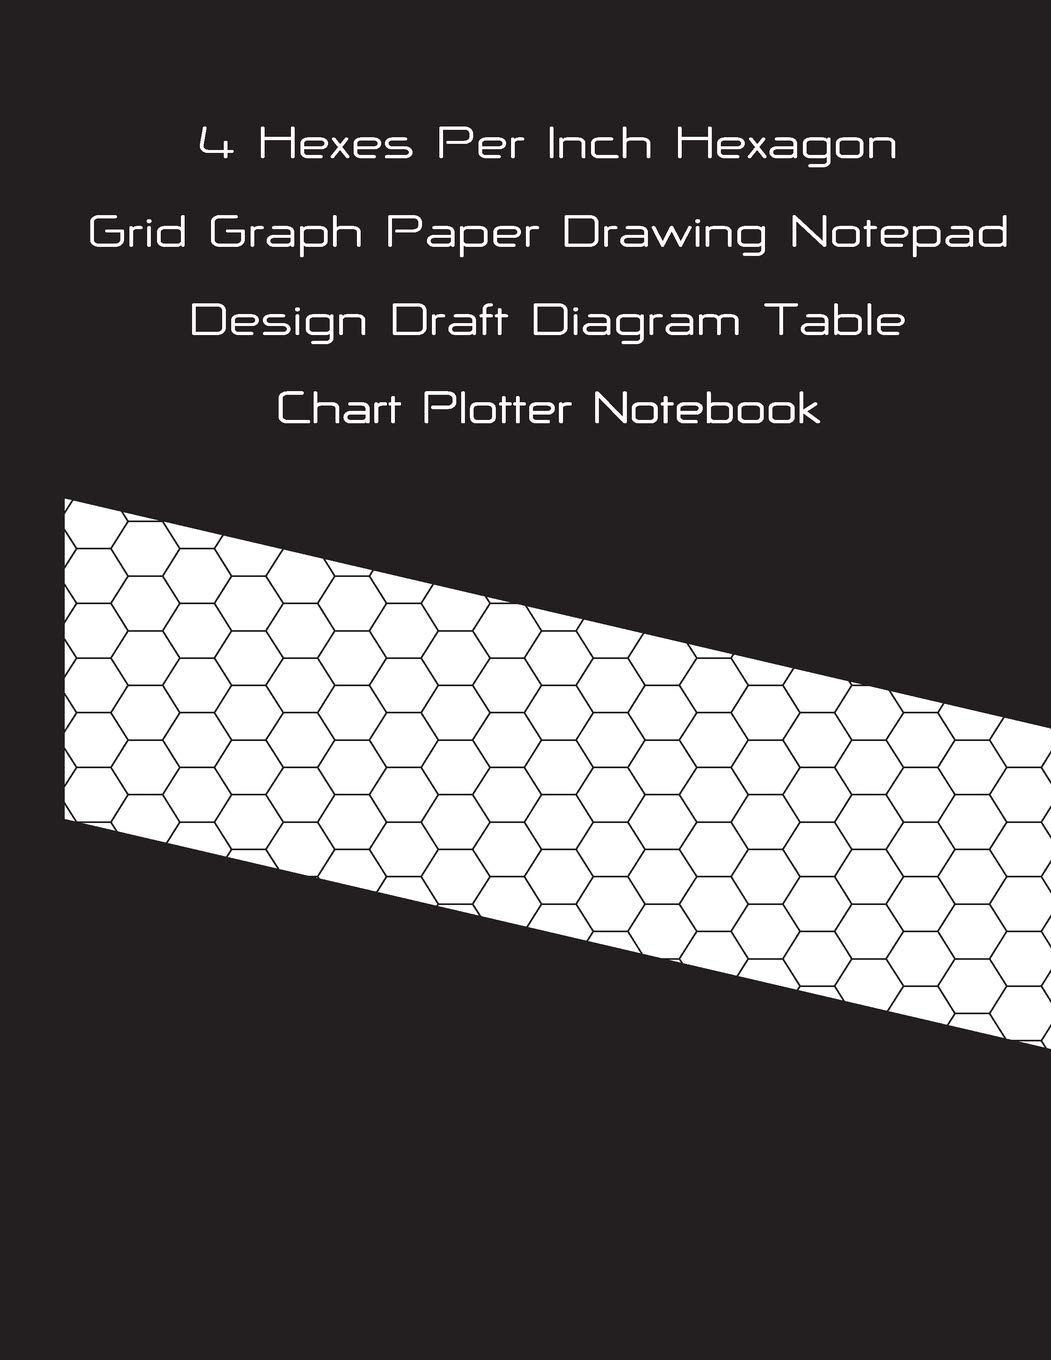 4 Hexes Per Inch Hexagon Grid Graph Paper Drawing Notepad Design Draft Diagram Table Chart Plotter Notebook: Bullet Journal Stencil Planner Figure ... Architects Designer Artists & Contractors: Amazon.es: Sk, Ks: Libros